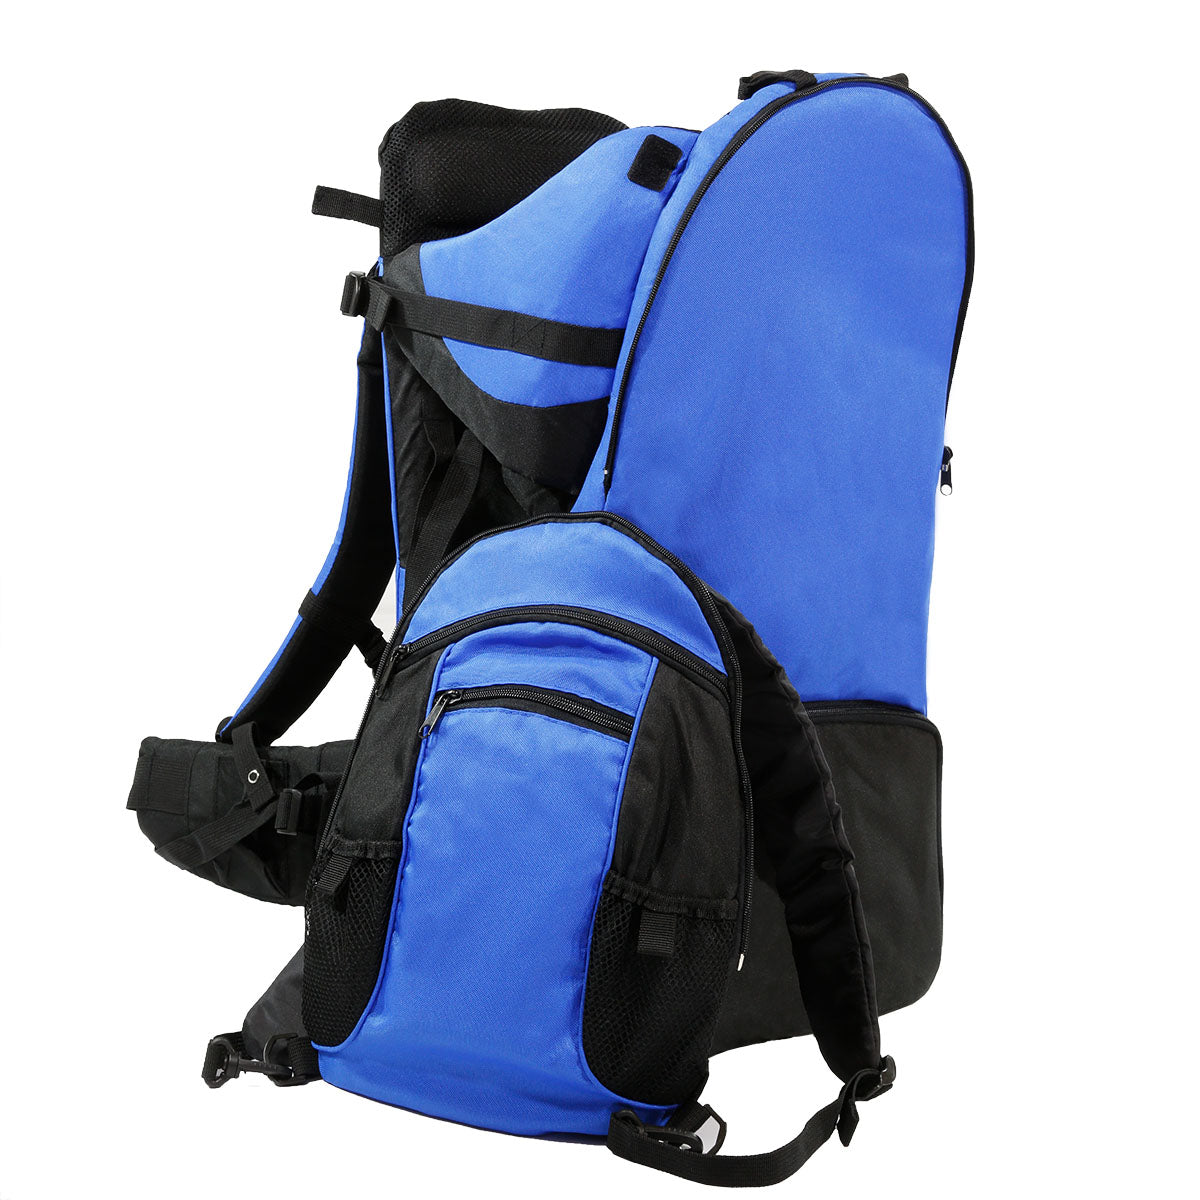 Deluxe Lightweight Baby Backpack Child Carrier Blue